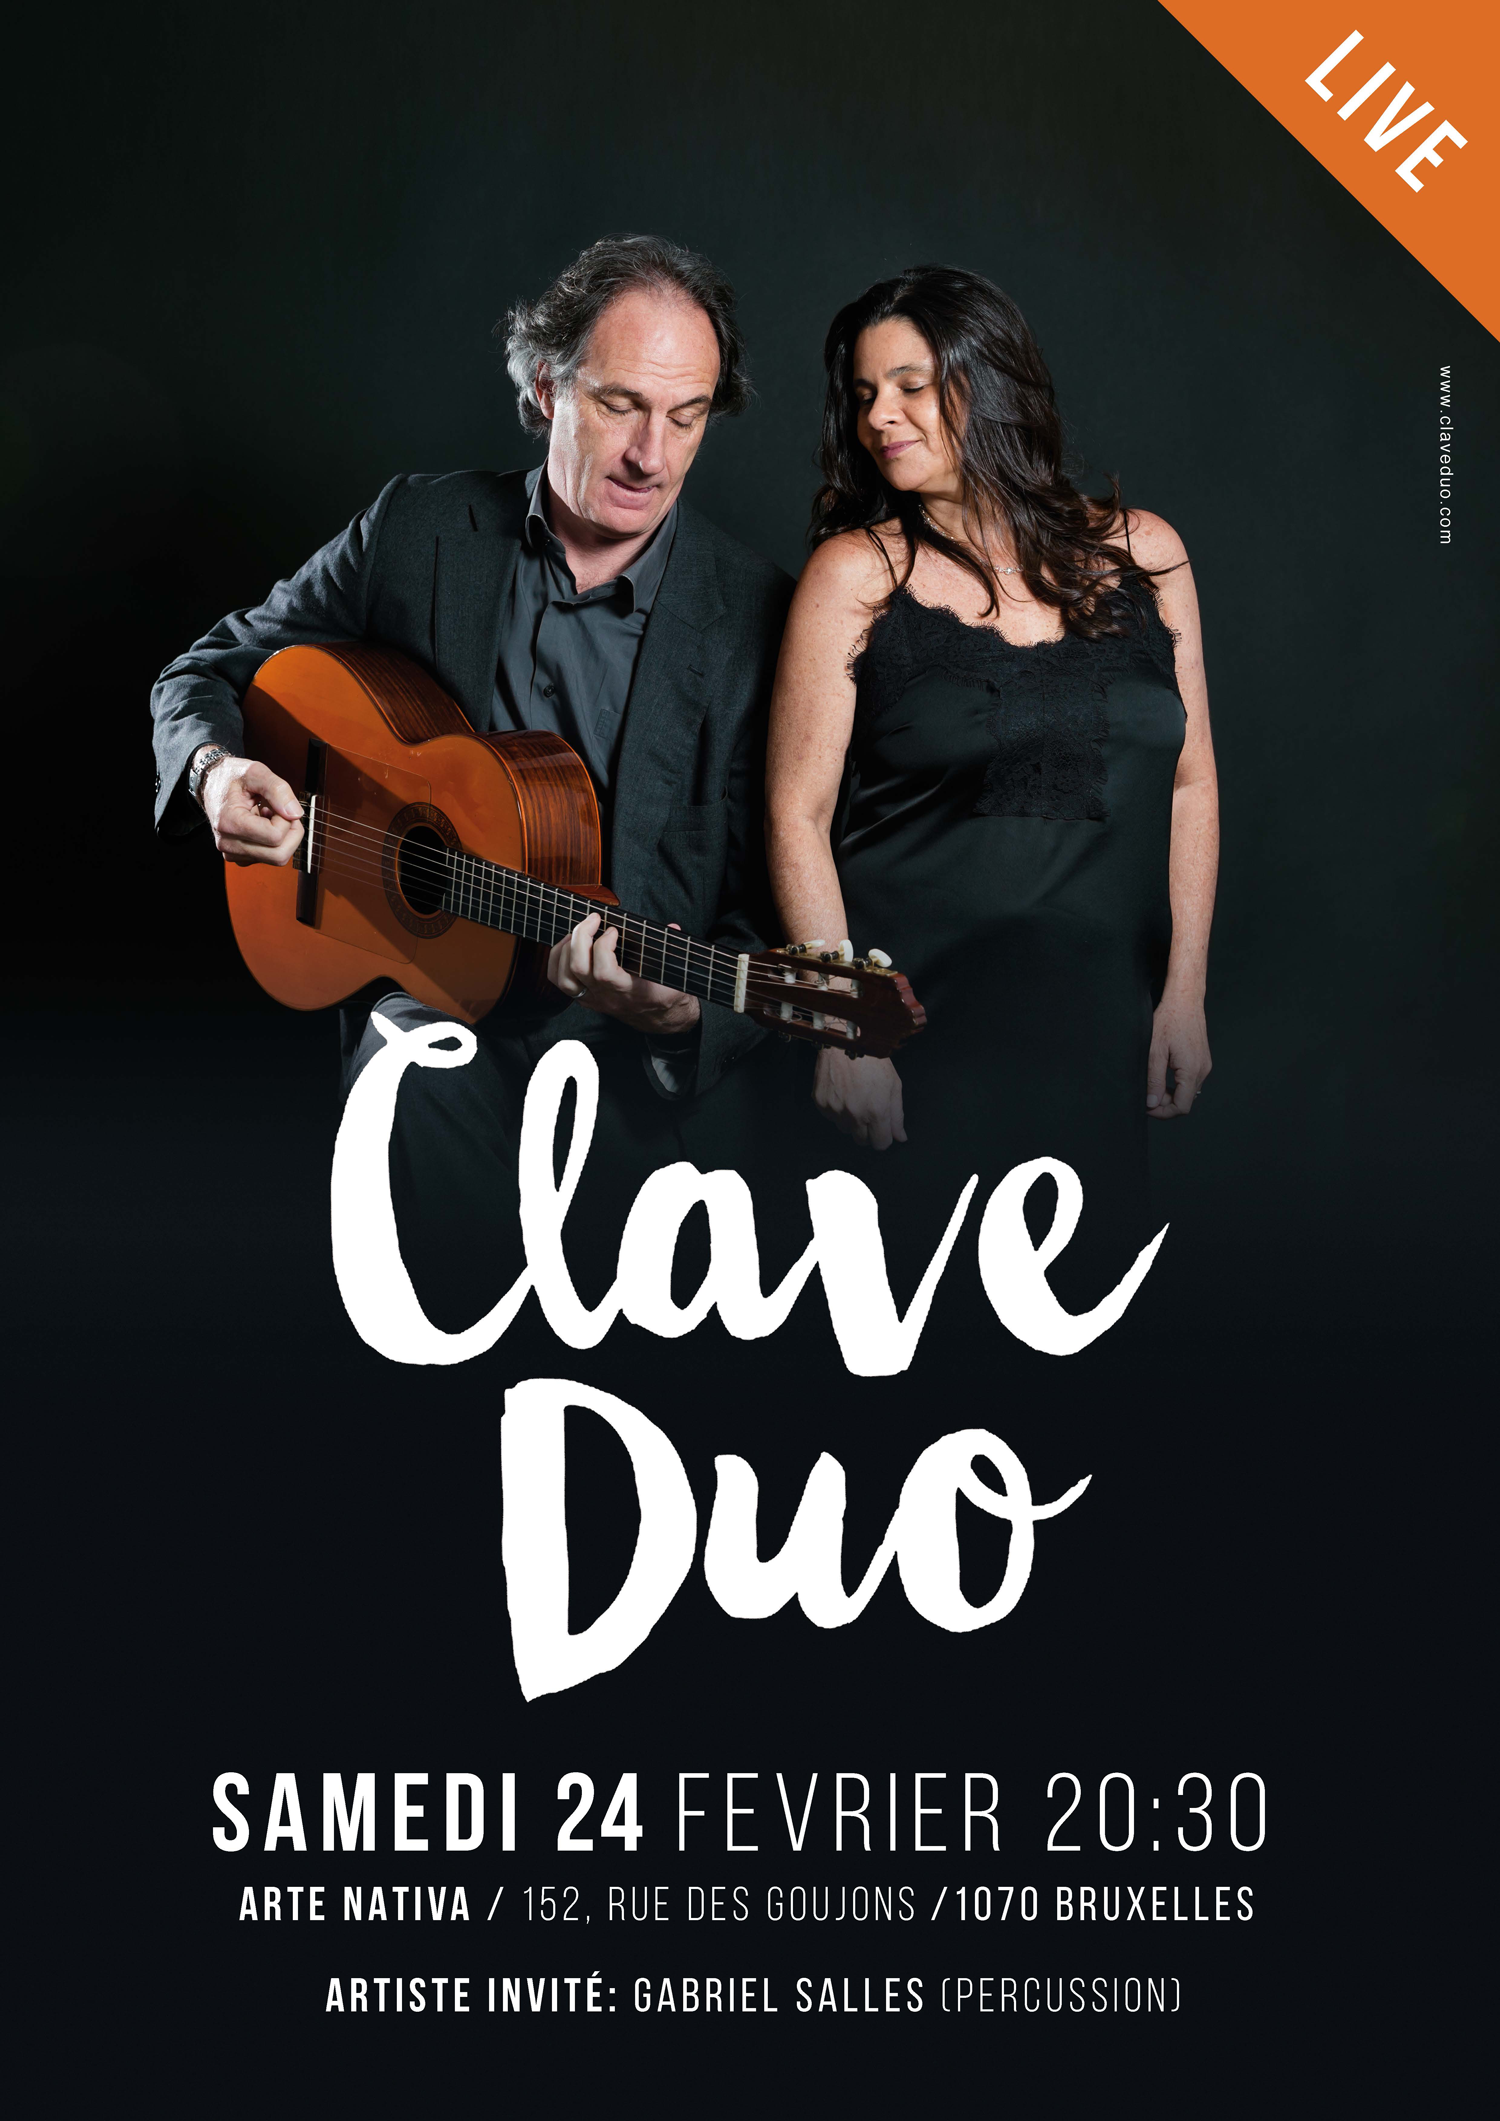 Poste-Clave-Duo.png